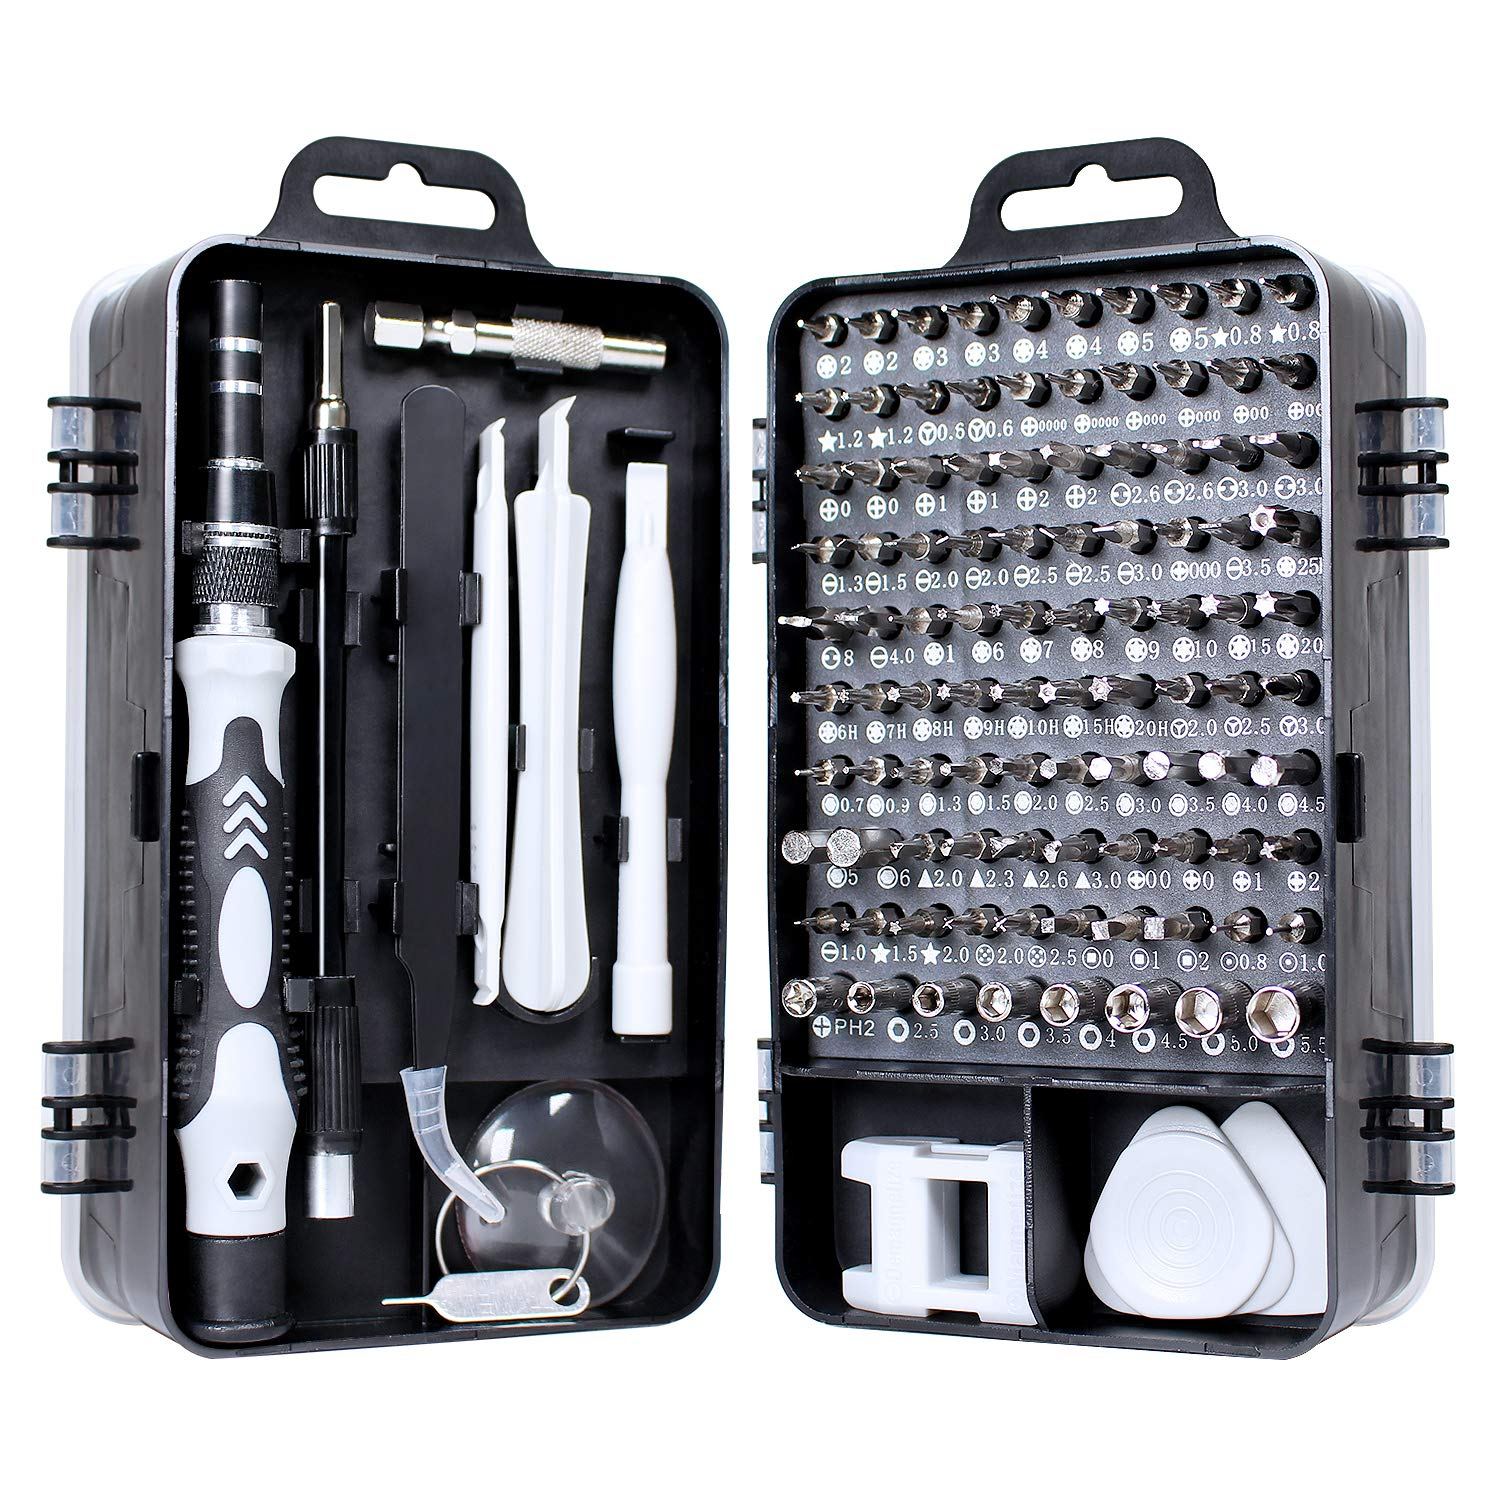 Every Screw bits you might need in one box